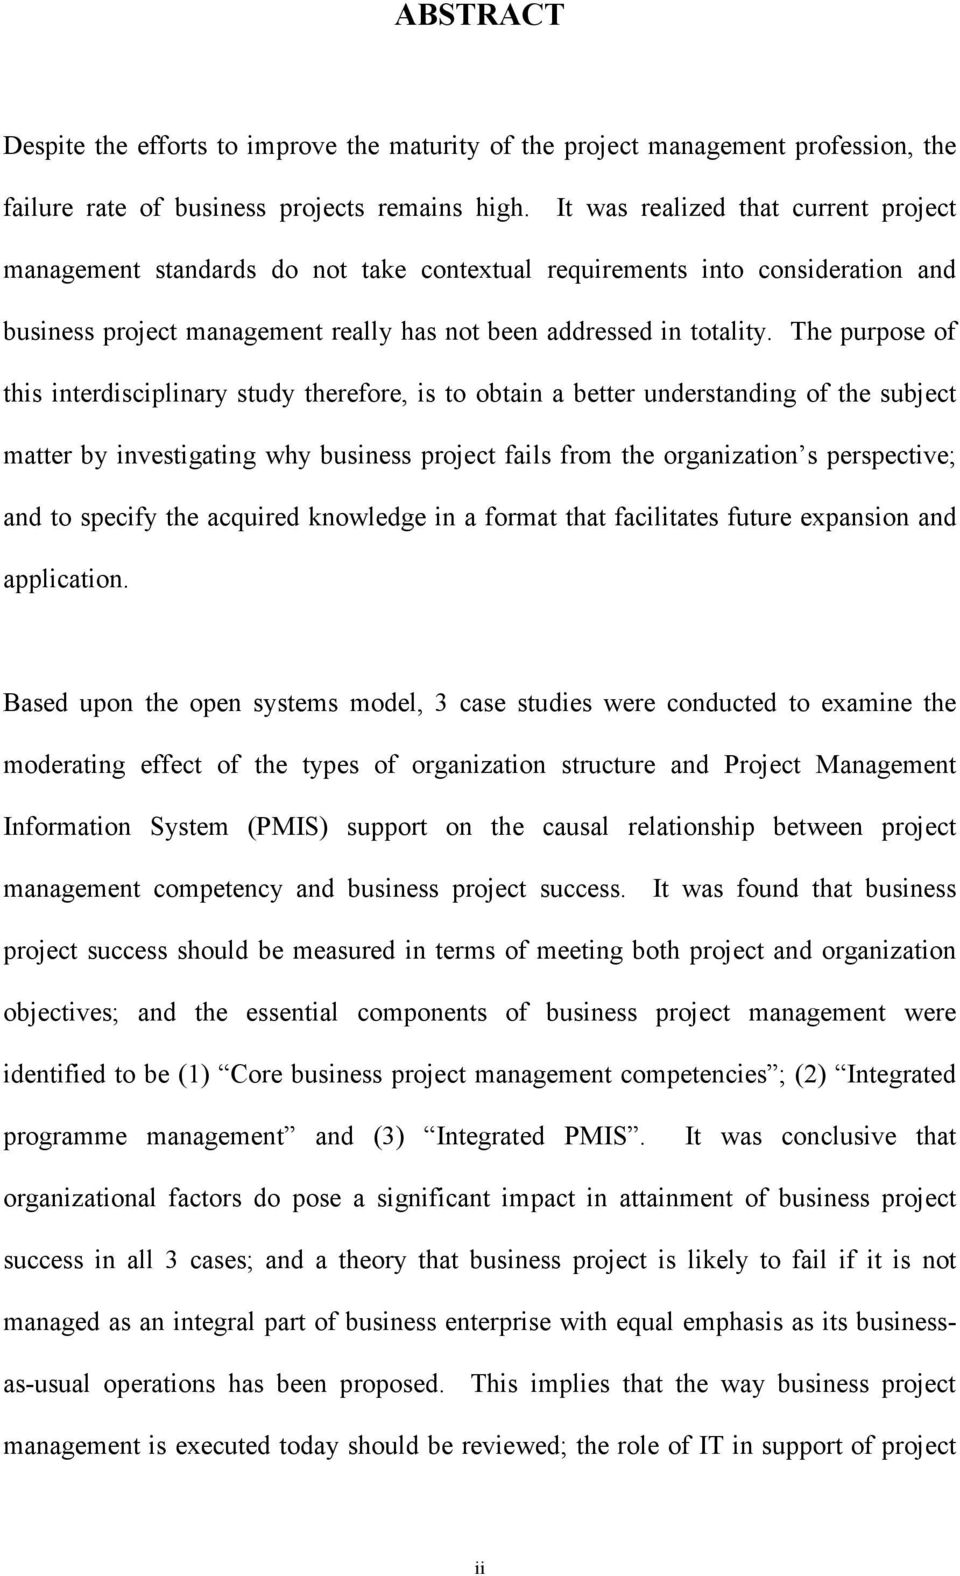 The purpose of this interdisciplinary study therefore, is to obtain a better understanding of the subject matter by investigating why business project fails from the organization s perspective; and